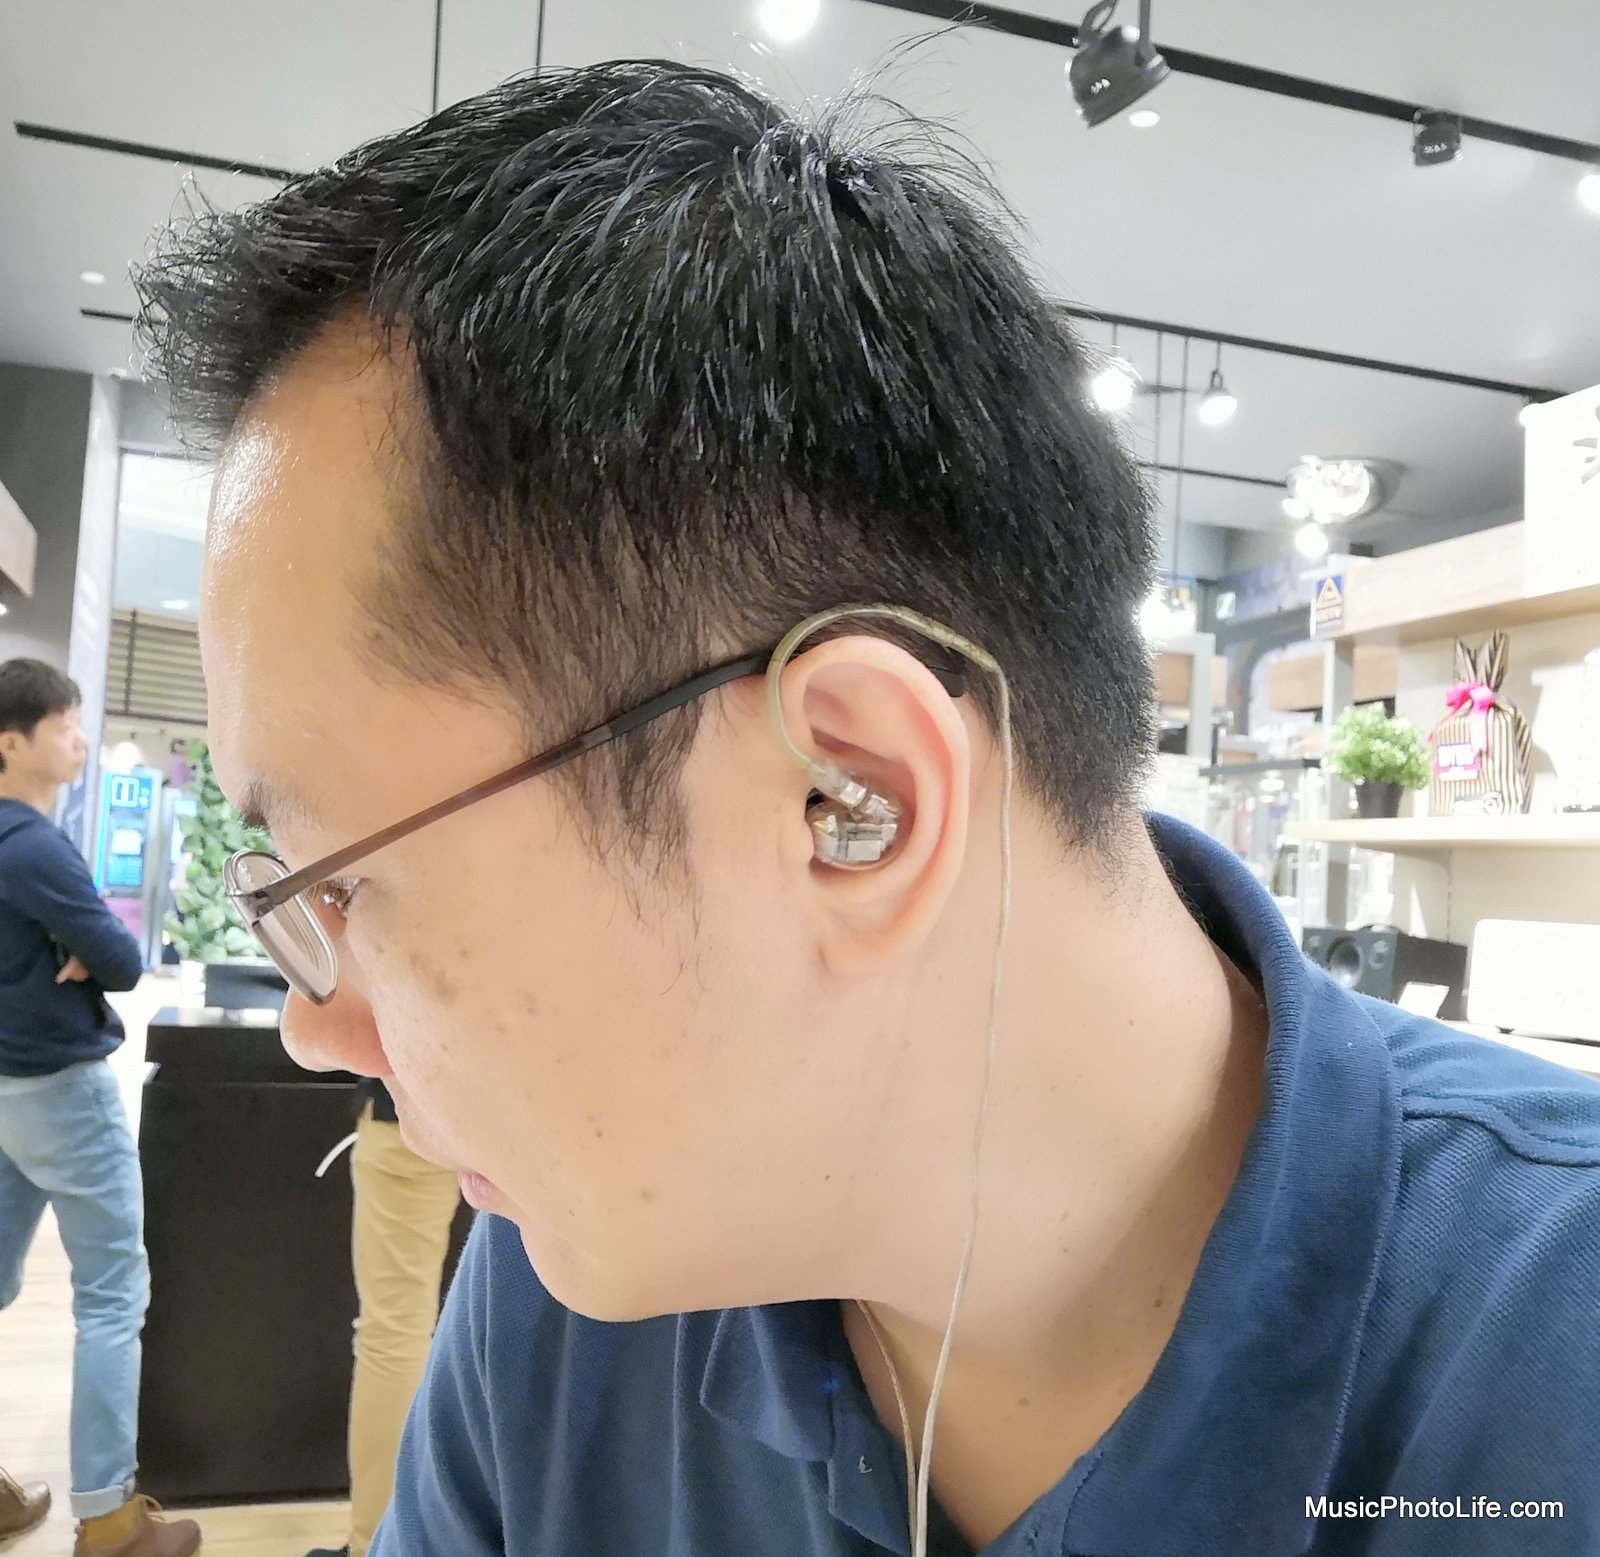 Chester Tan of musicphotolife.com reviewing the Shure SE846 Sound Isolating Earphones with 4 Balanced Armature Drivers